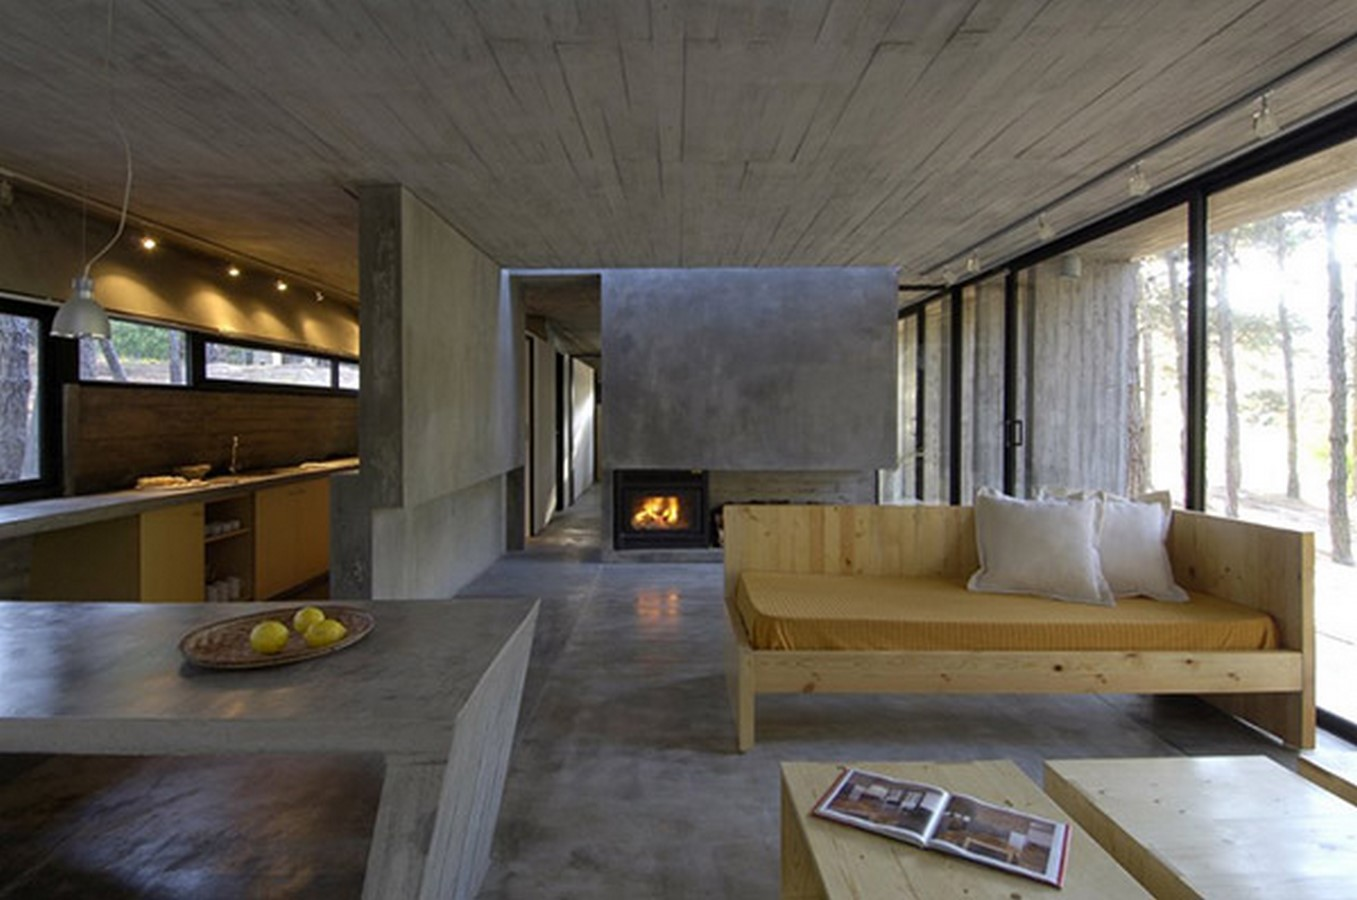 50 Living rooms enhanced by concrete - Sheet45